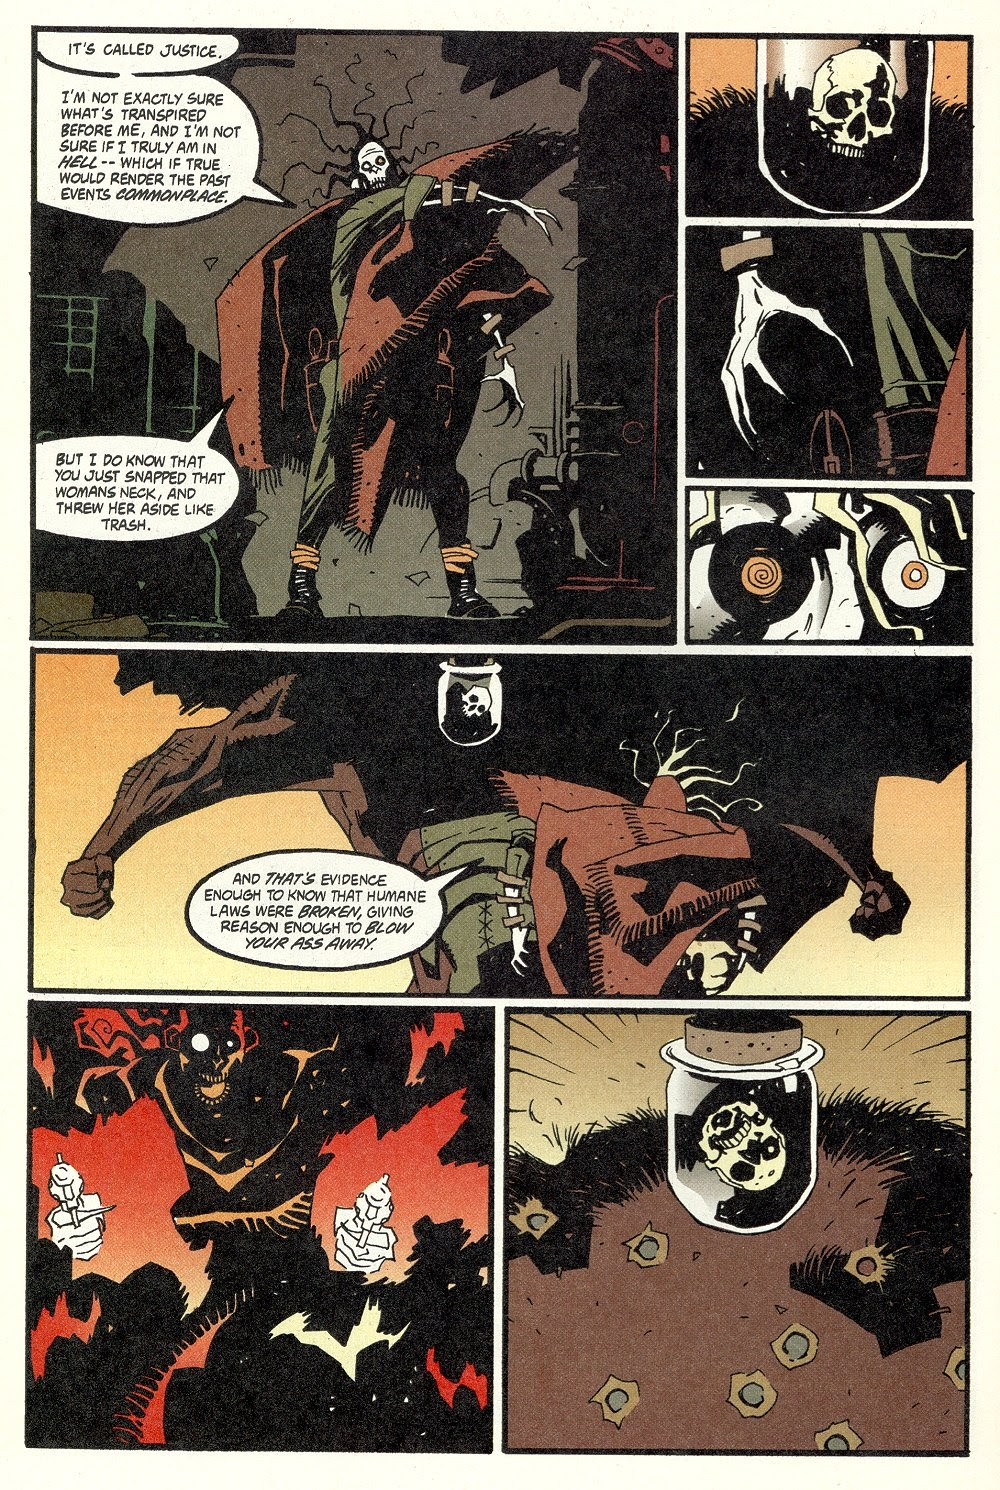 Read online Ted McKeever's Metropol comic -  Issue #11 - 28